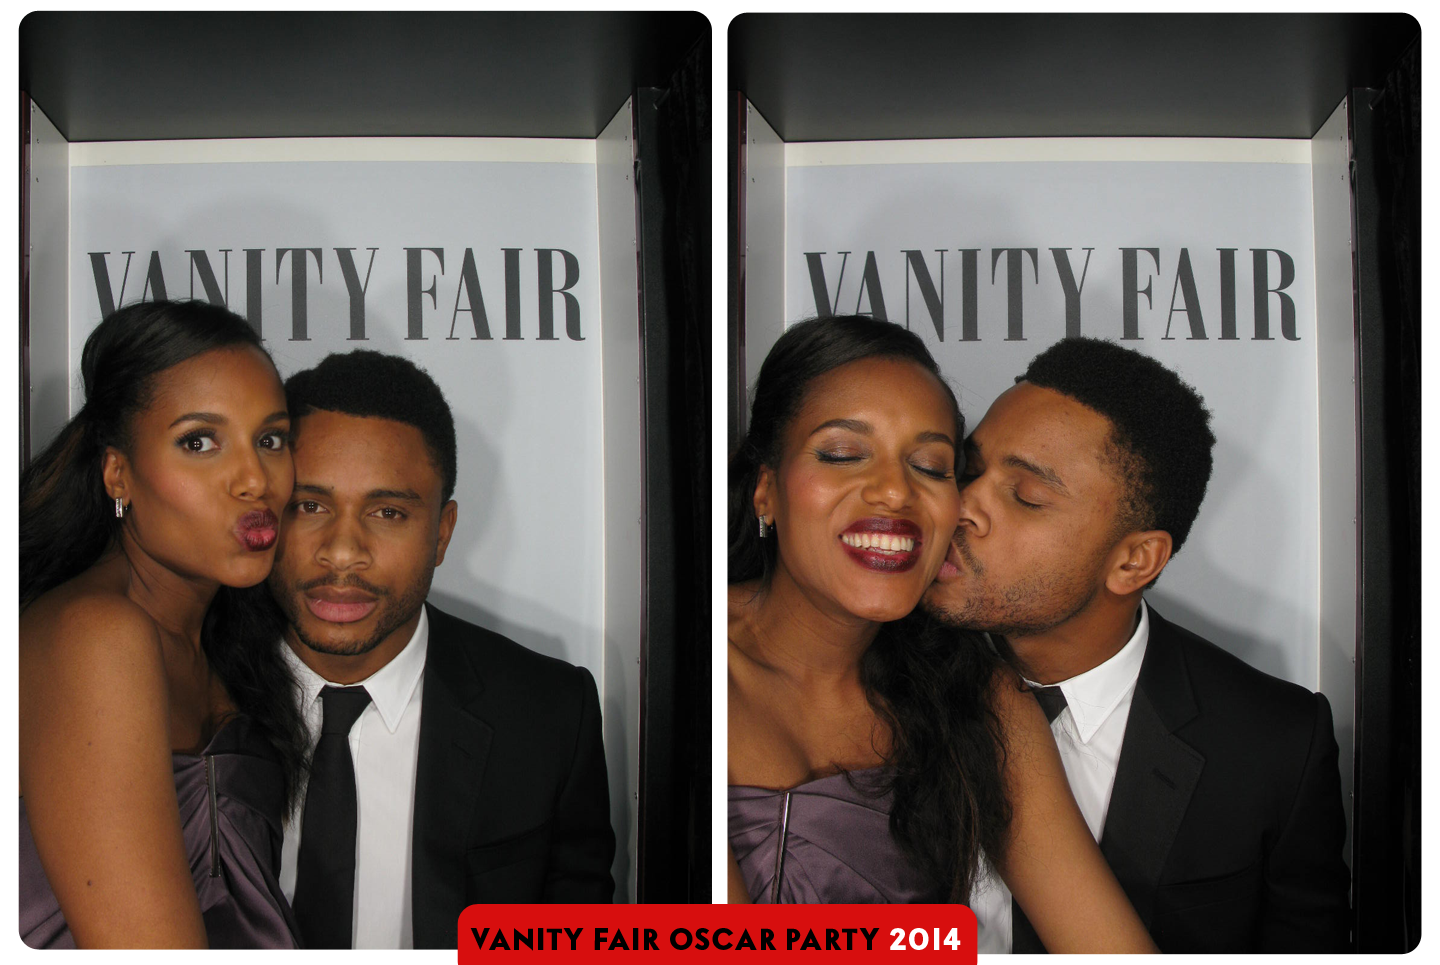 53154894b27a7dc92f3f89ff_ss04-kerry-washington-vanity-fair-photo-booth.png